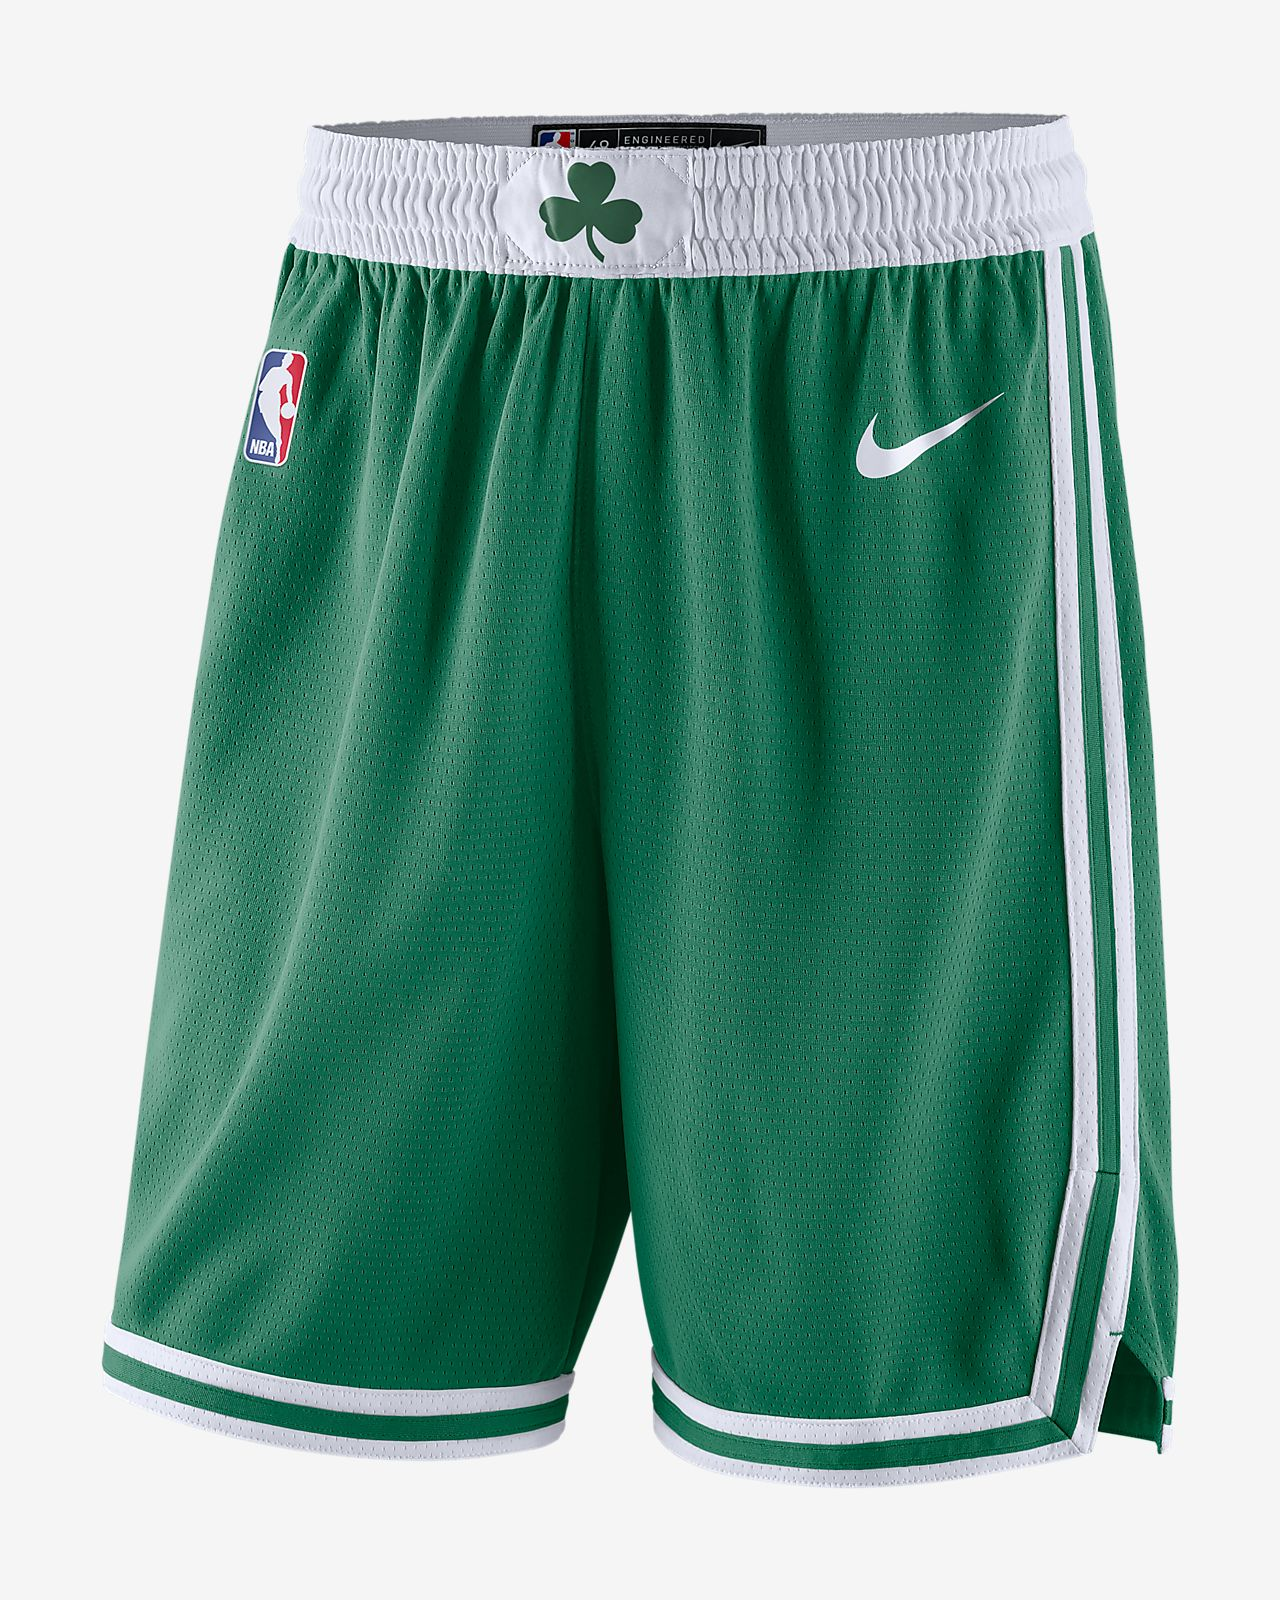 Boston Celtics Icon Edition Swingman Nike NBA-s férfi rövidnadrág